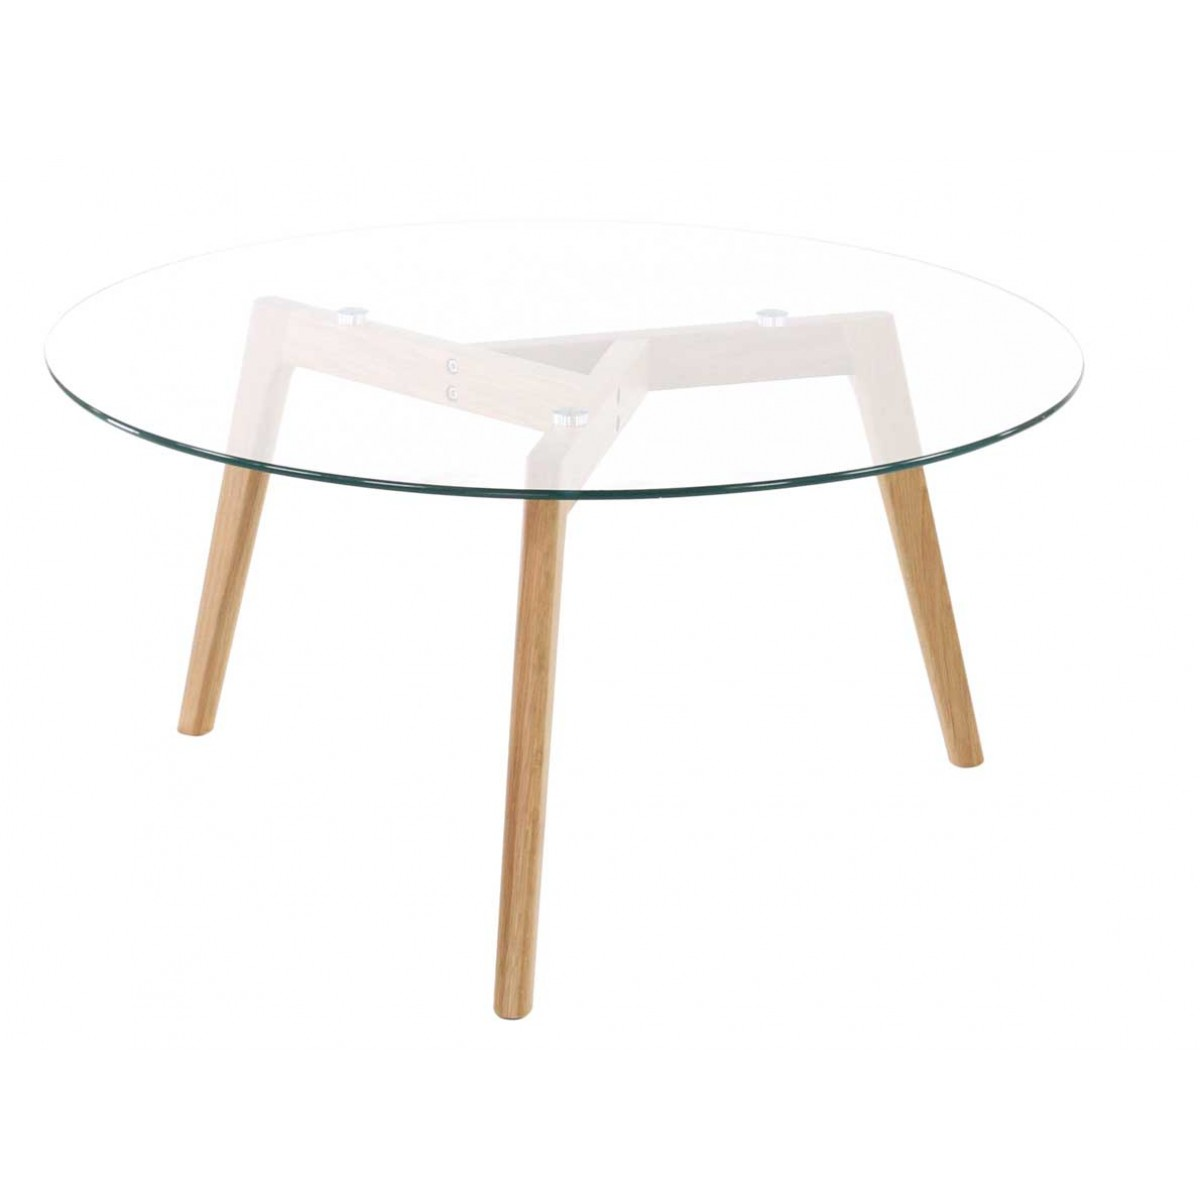 Table basse en verre ronde design scandie mooviin for Table un pied